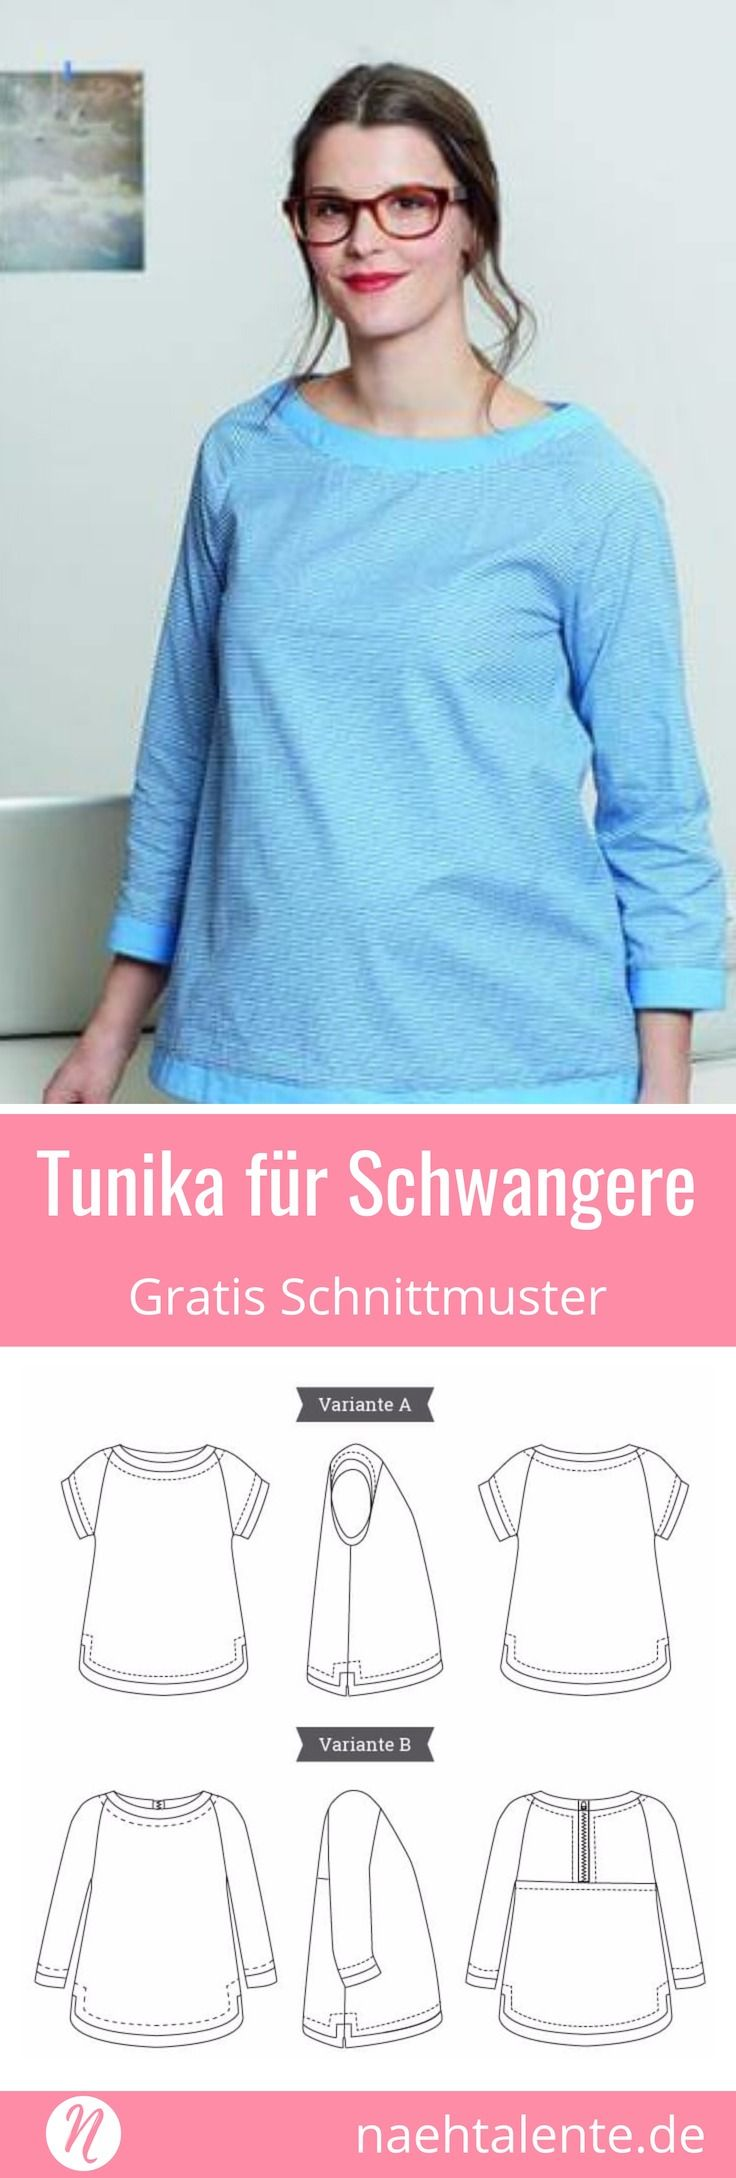 177 best nähen images on Pinterest | Sewing ideas, Sewing patterns ...